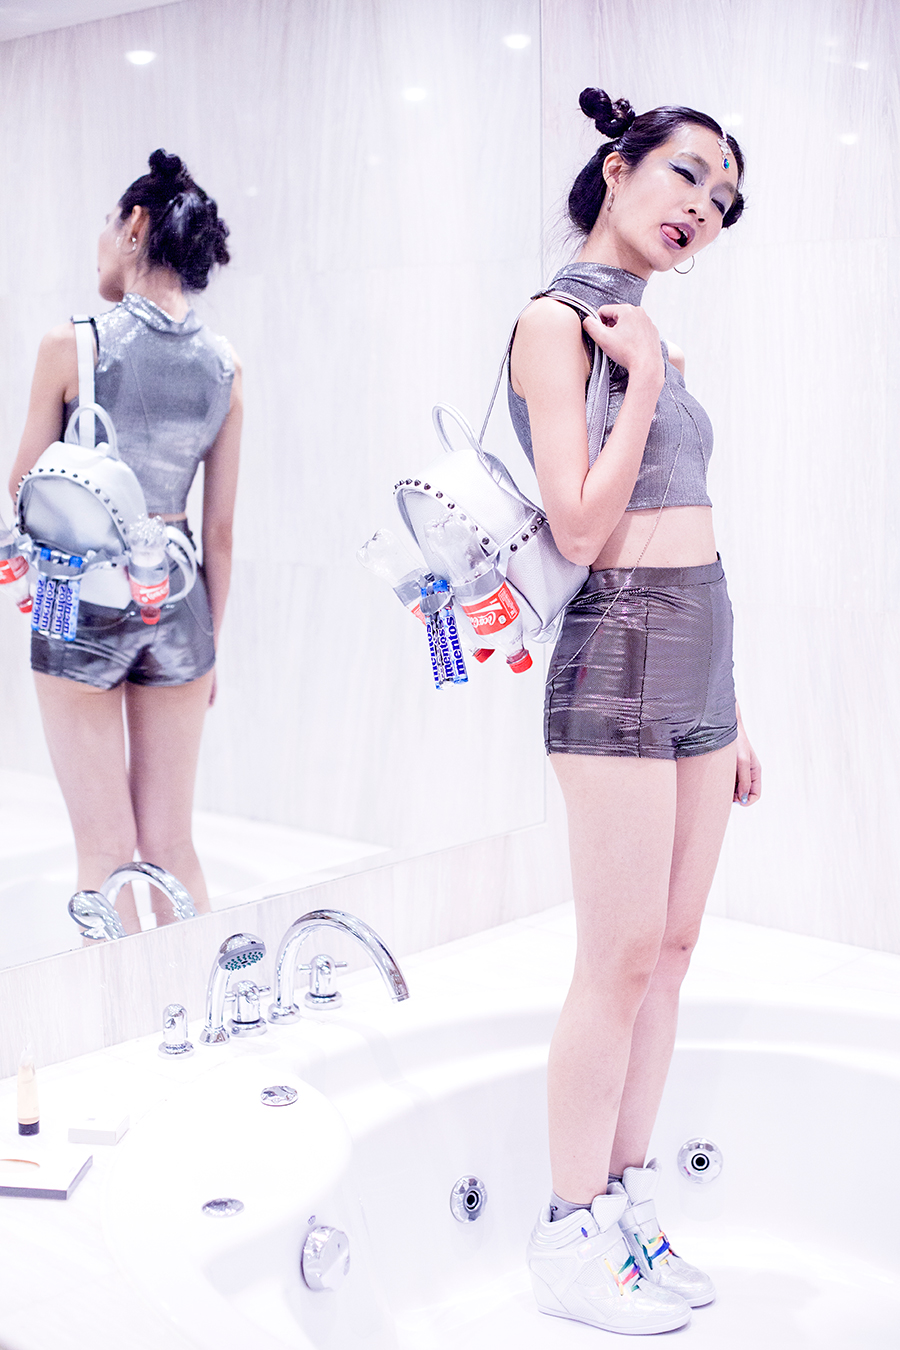 Halloween Spacesuit outfit: Topshop mystic drop hair chain, Topshop silver hoop earrings, Bugis Street silver high-collar top, Forever 21 silver shorts, Taobao grey astronaut socks, Zalora iridescent concealed wedges sneakers, Bugis Street silver studded backpack, Coca-cola bottles, Mentos sweets.